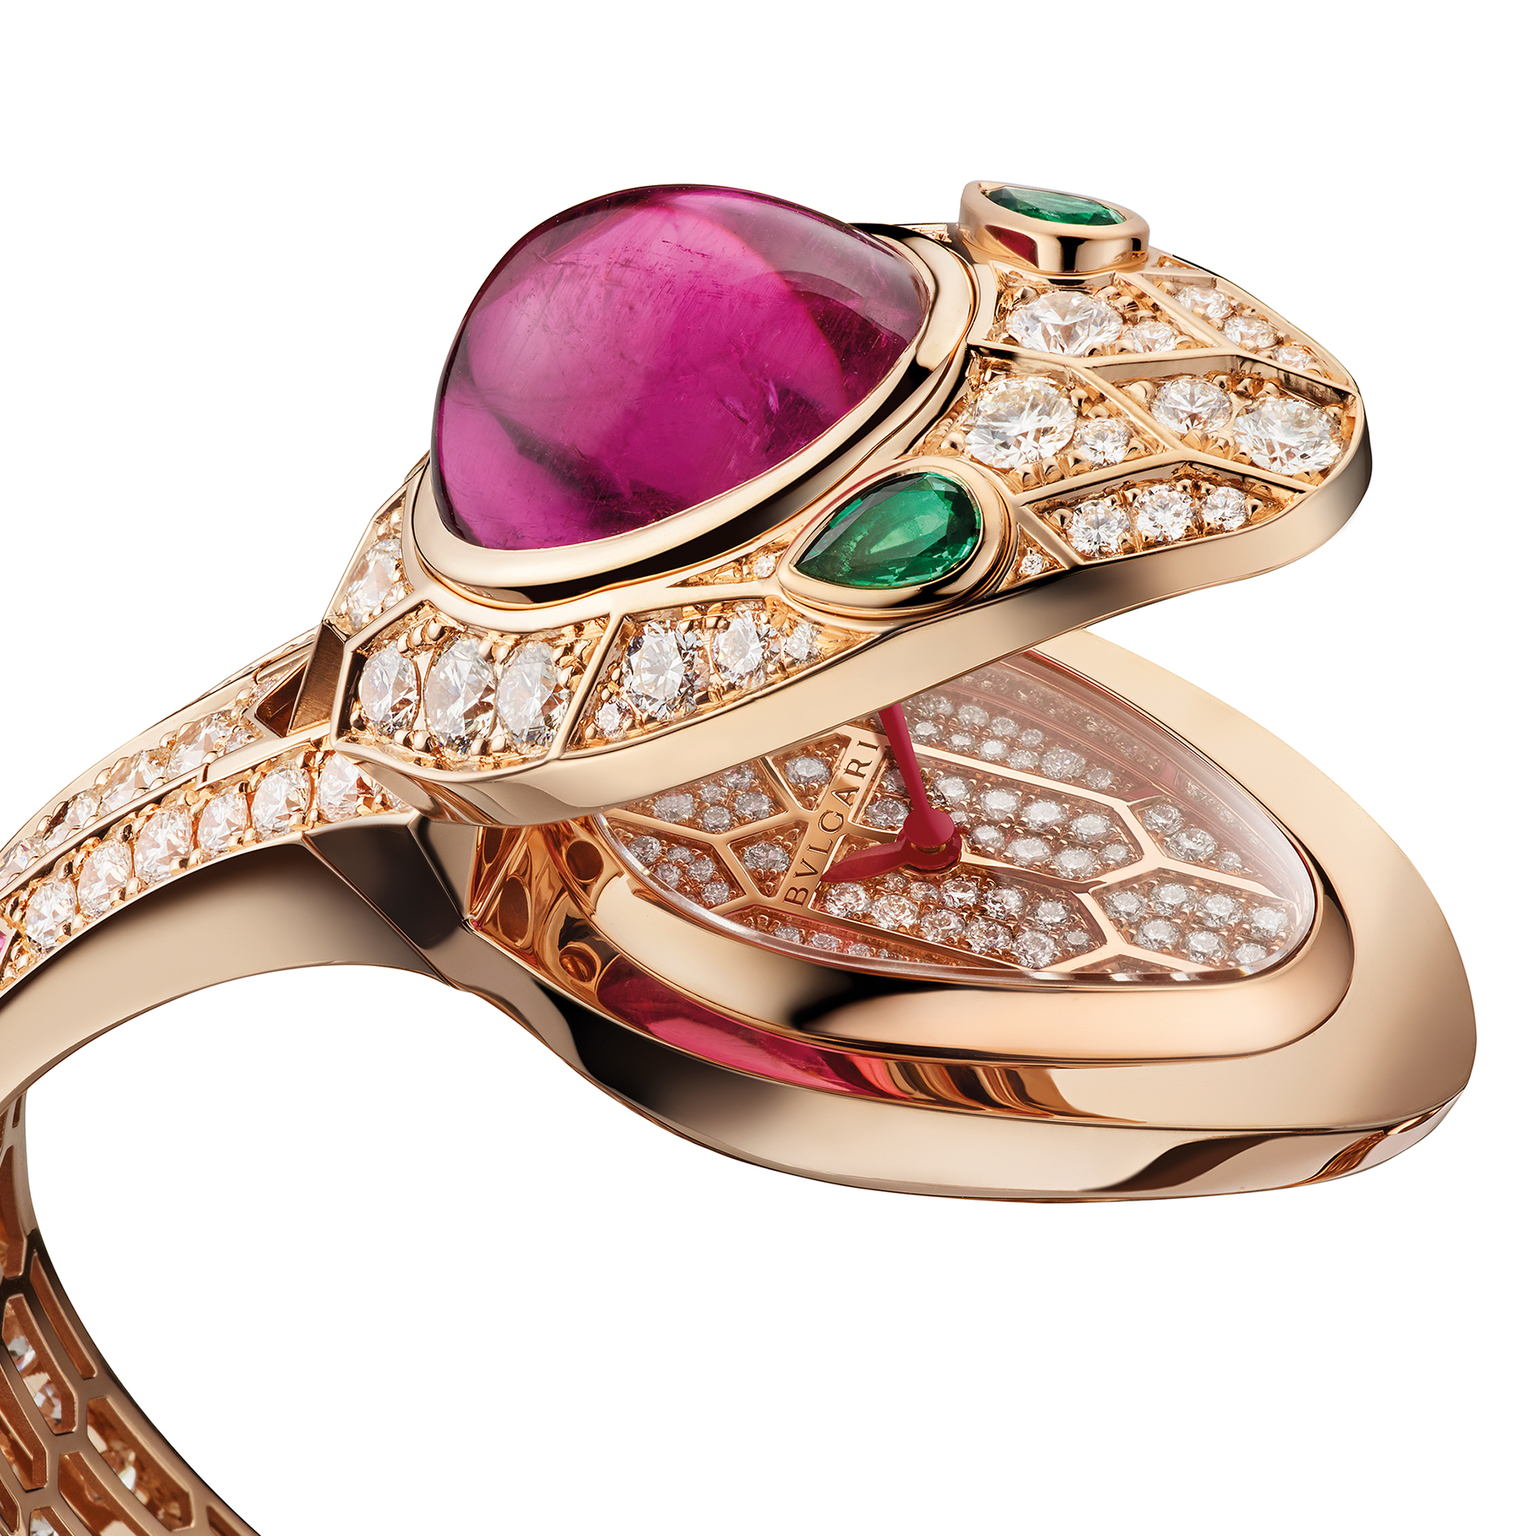 Bulgari Serpenti secret watch cuff with pink tourmaline